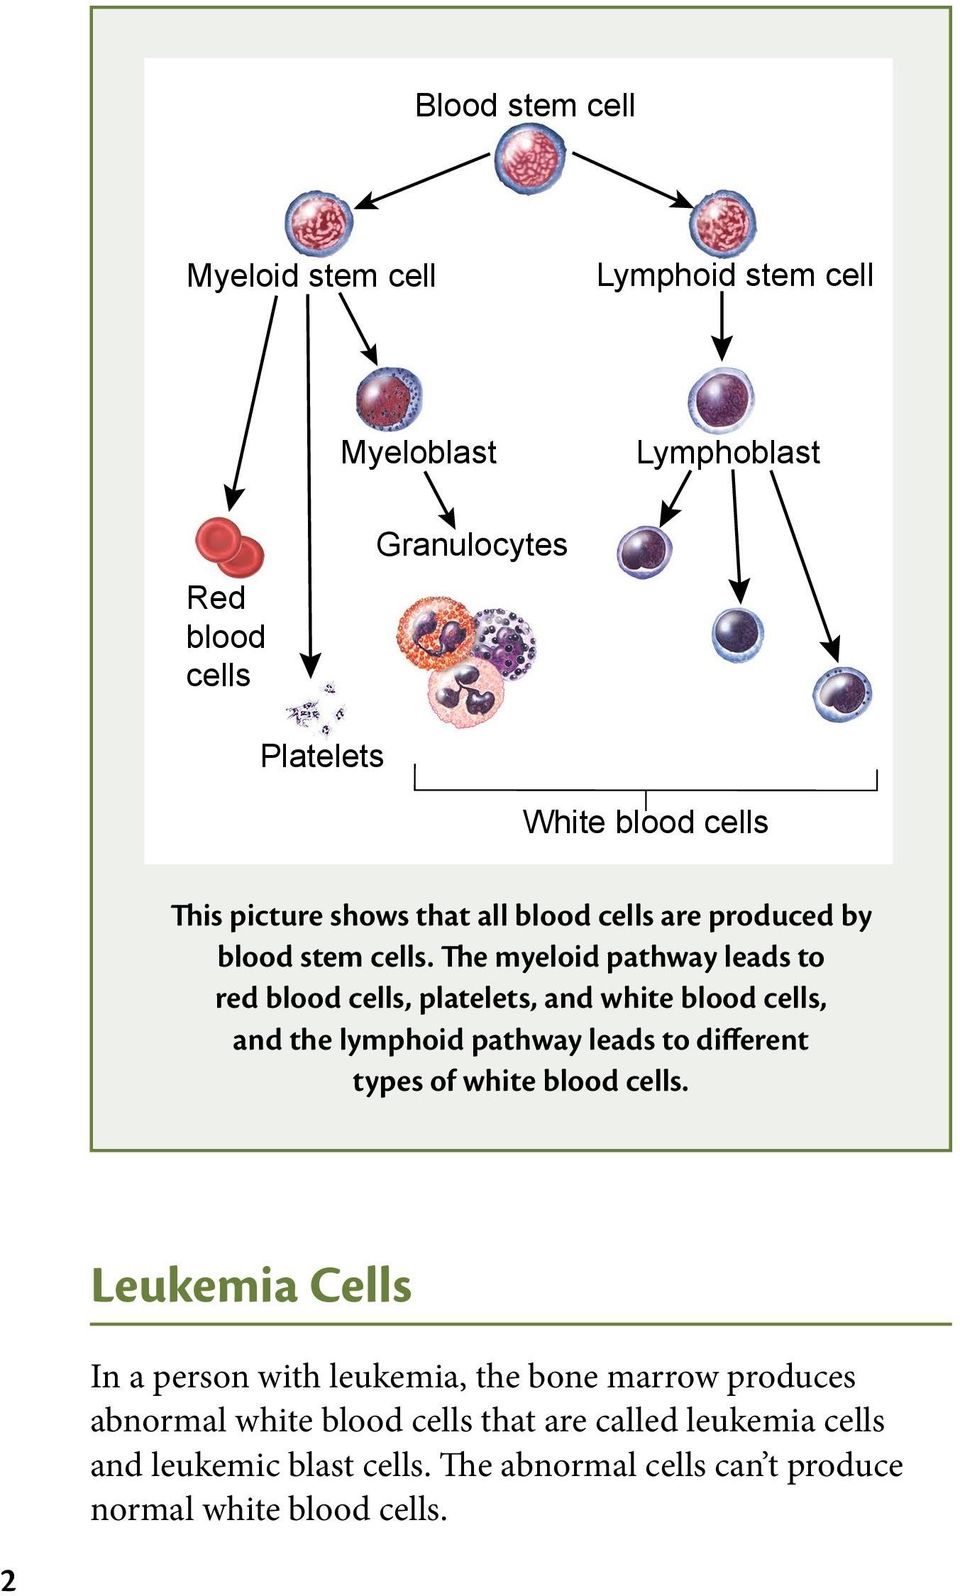 The myeloid pathway leads to red blood cells, platelets, and white blood cells, and the lymphoid pathway leads to different types of white